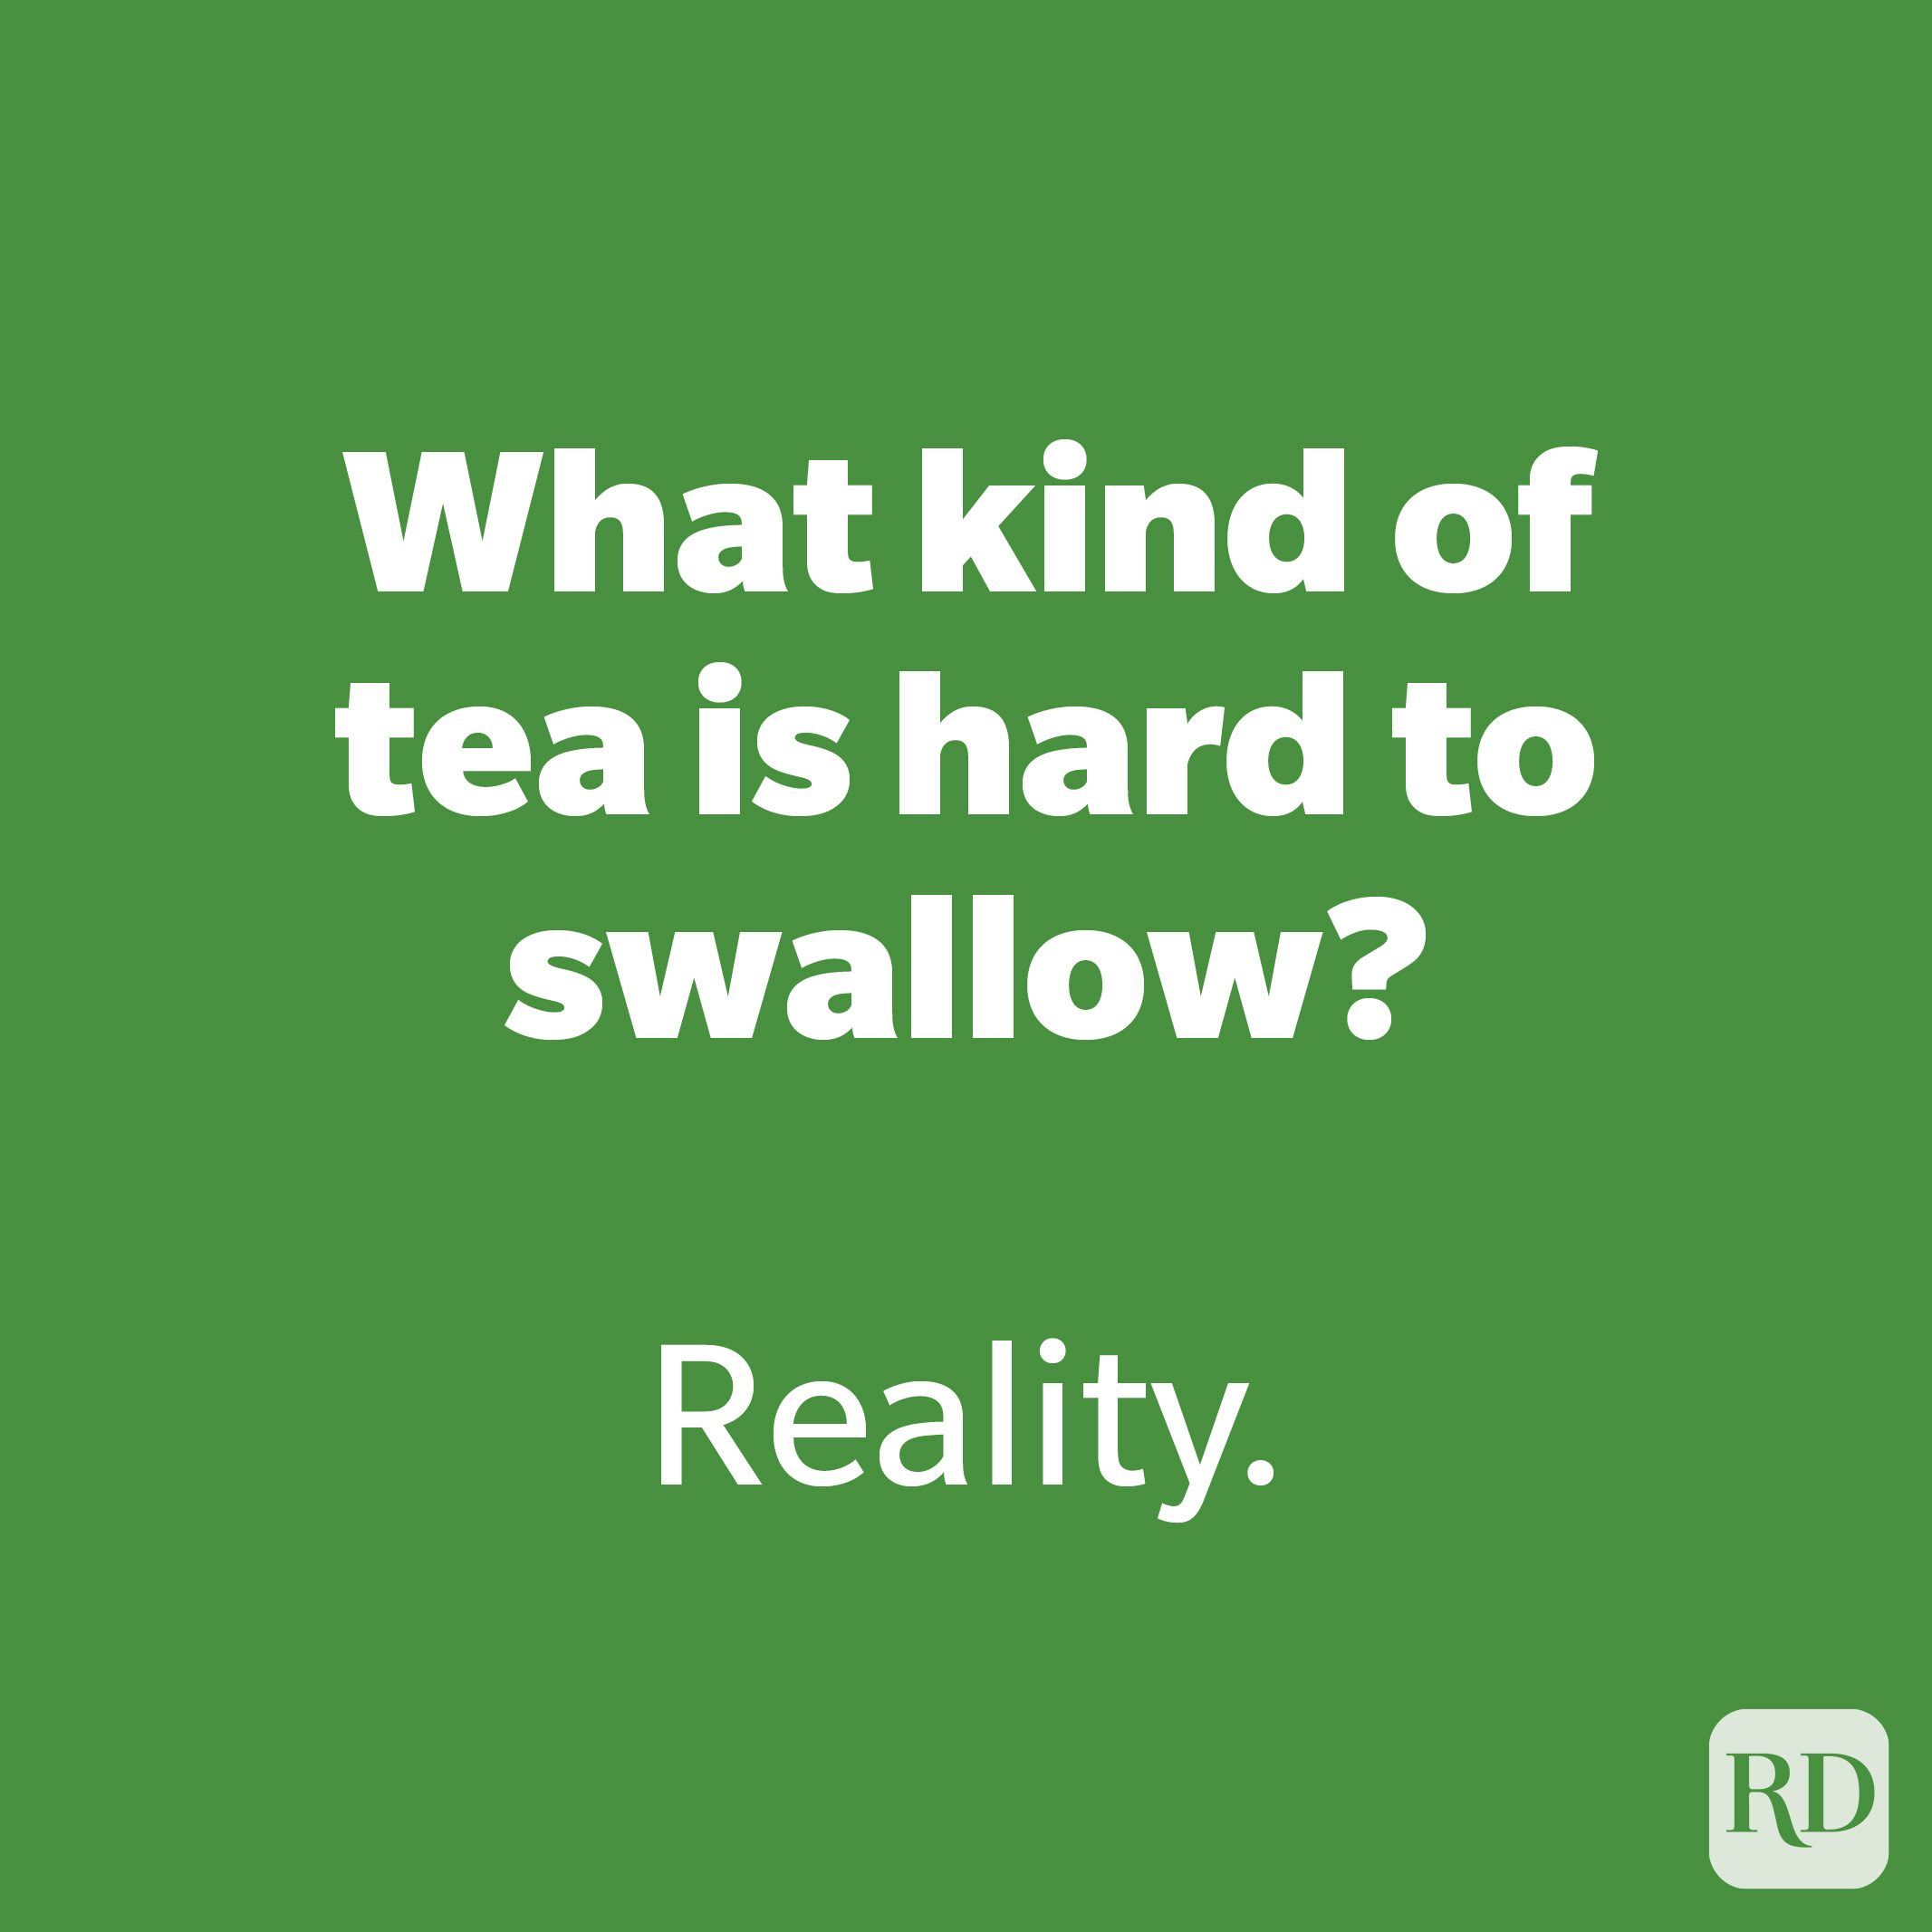 What kind of tea is hard to swallow?